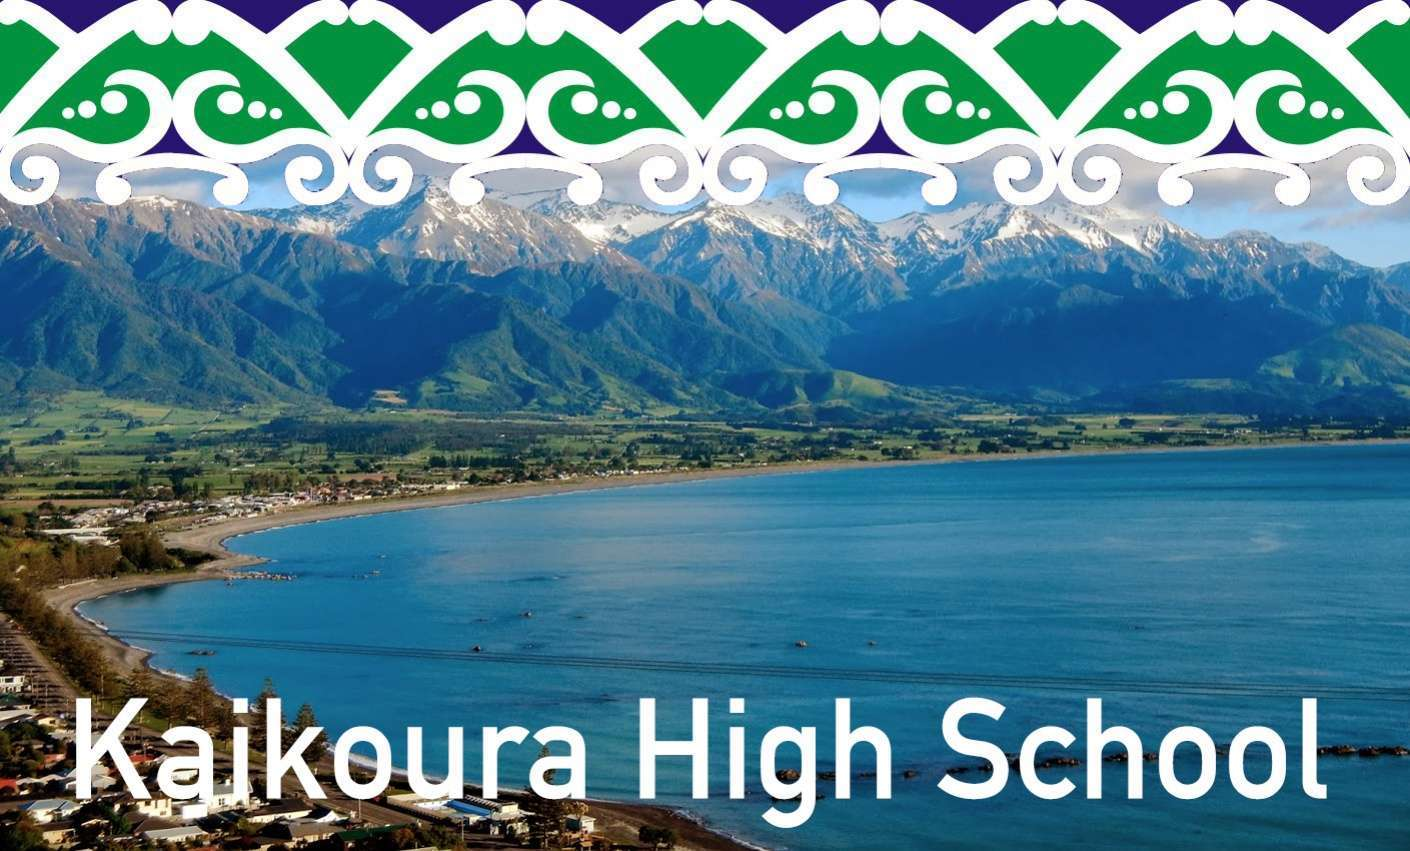 Kaikoura High School Chooses Inbox Design For Website Redesign Project